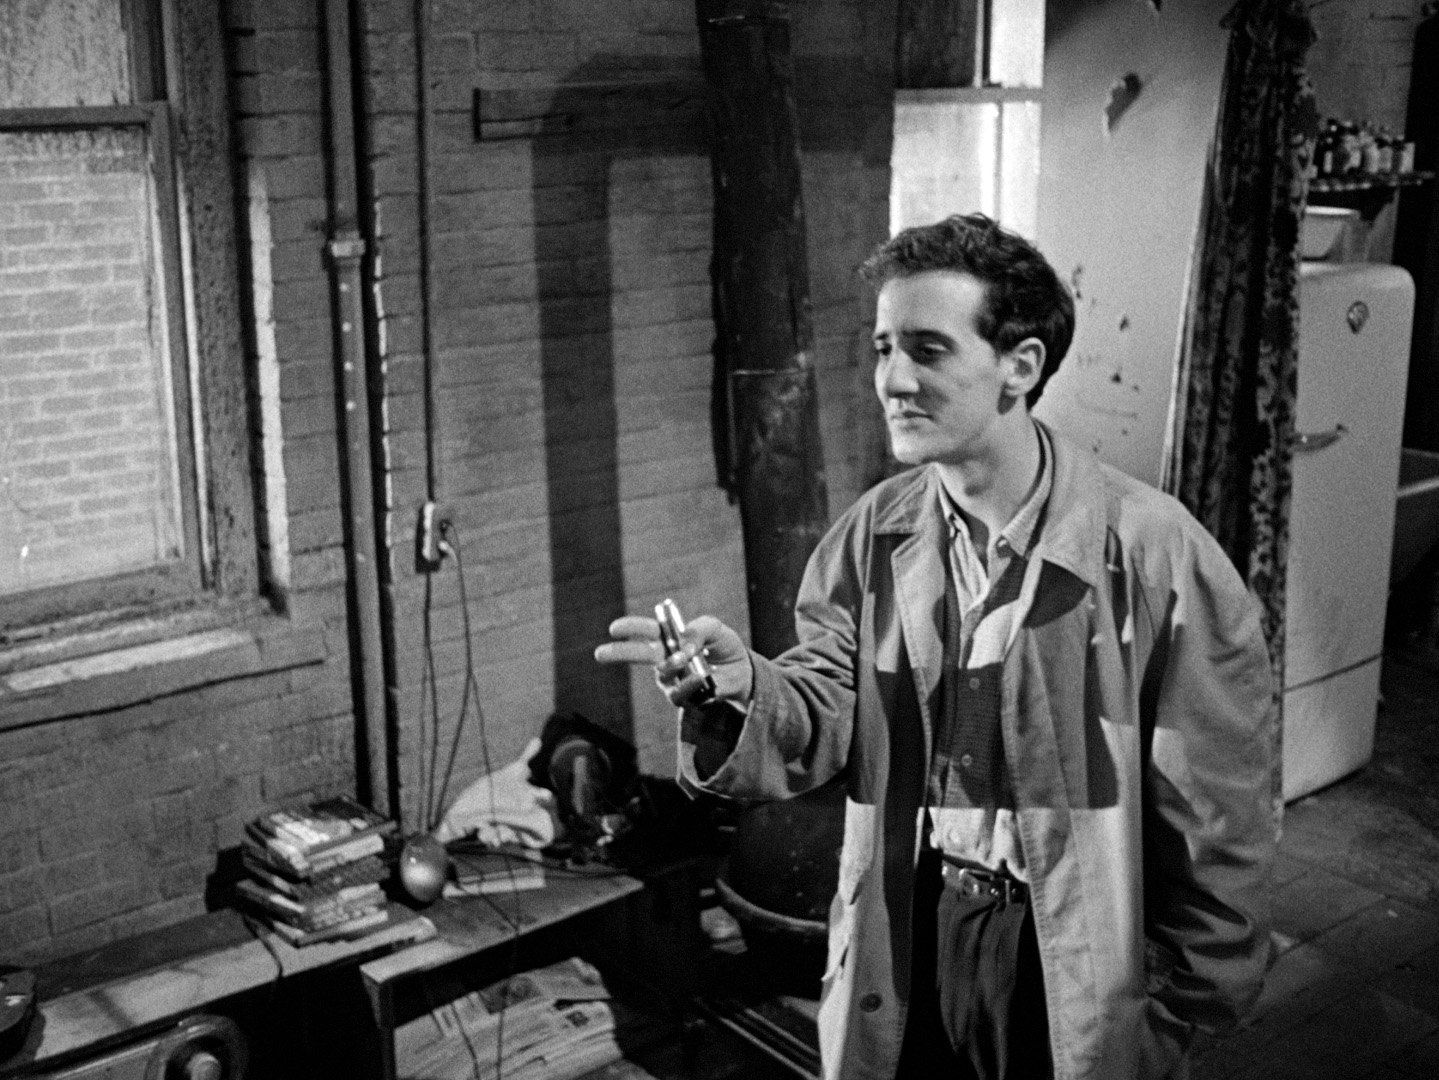 Warren Finnerty as Leach in a still from 'The Connection' (1961)